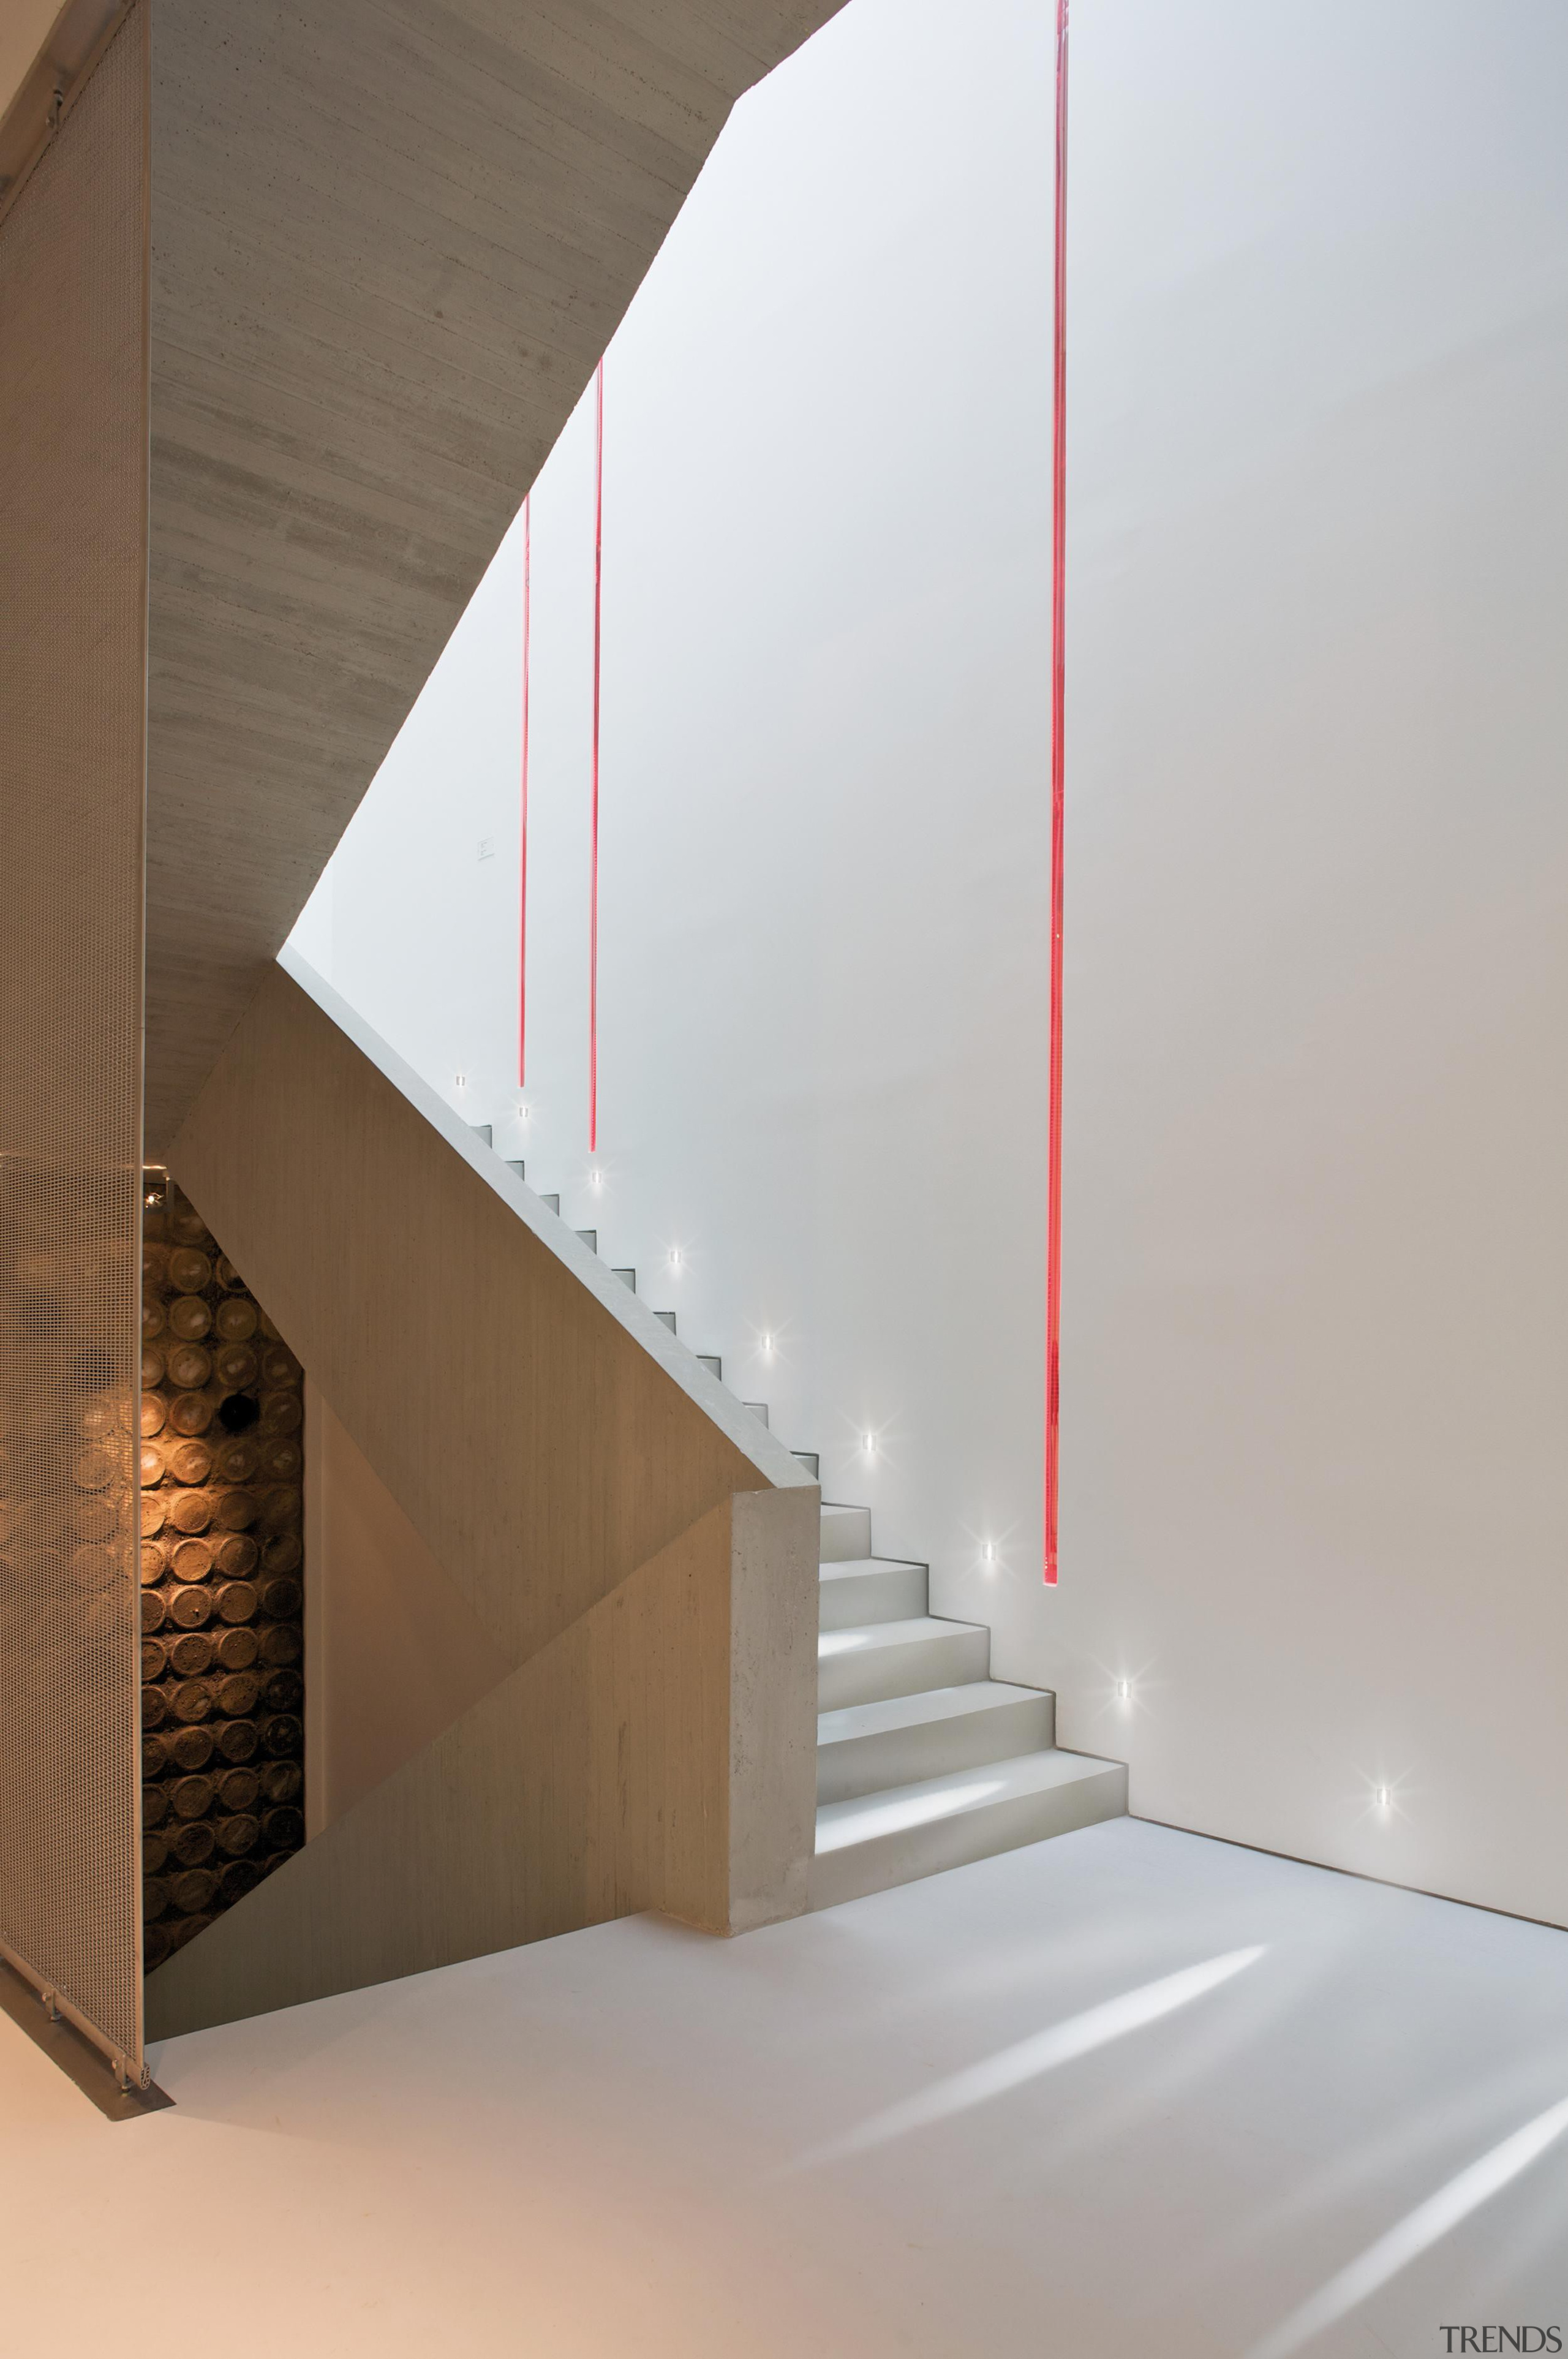 LED Lights - architecture | daylighting | house architecture, daylighting, house, interior design, product design, stairs, gray, white